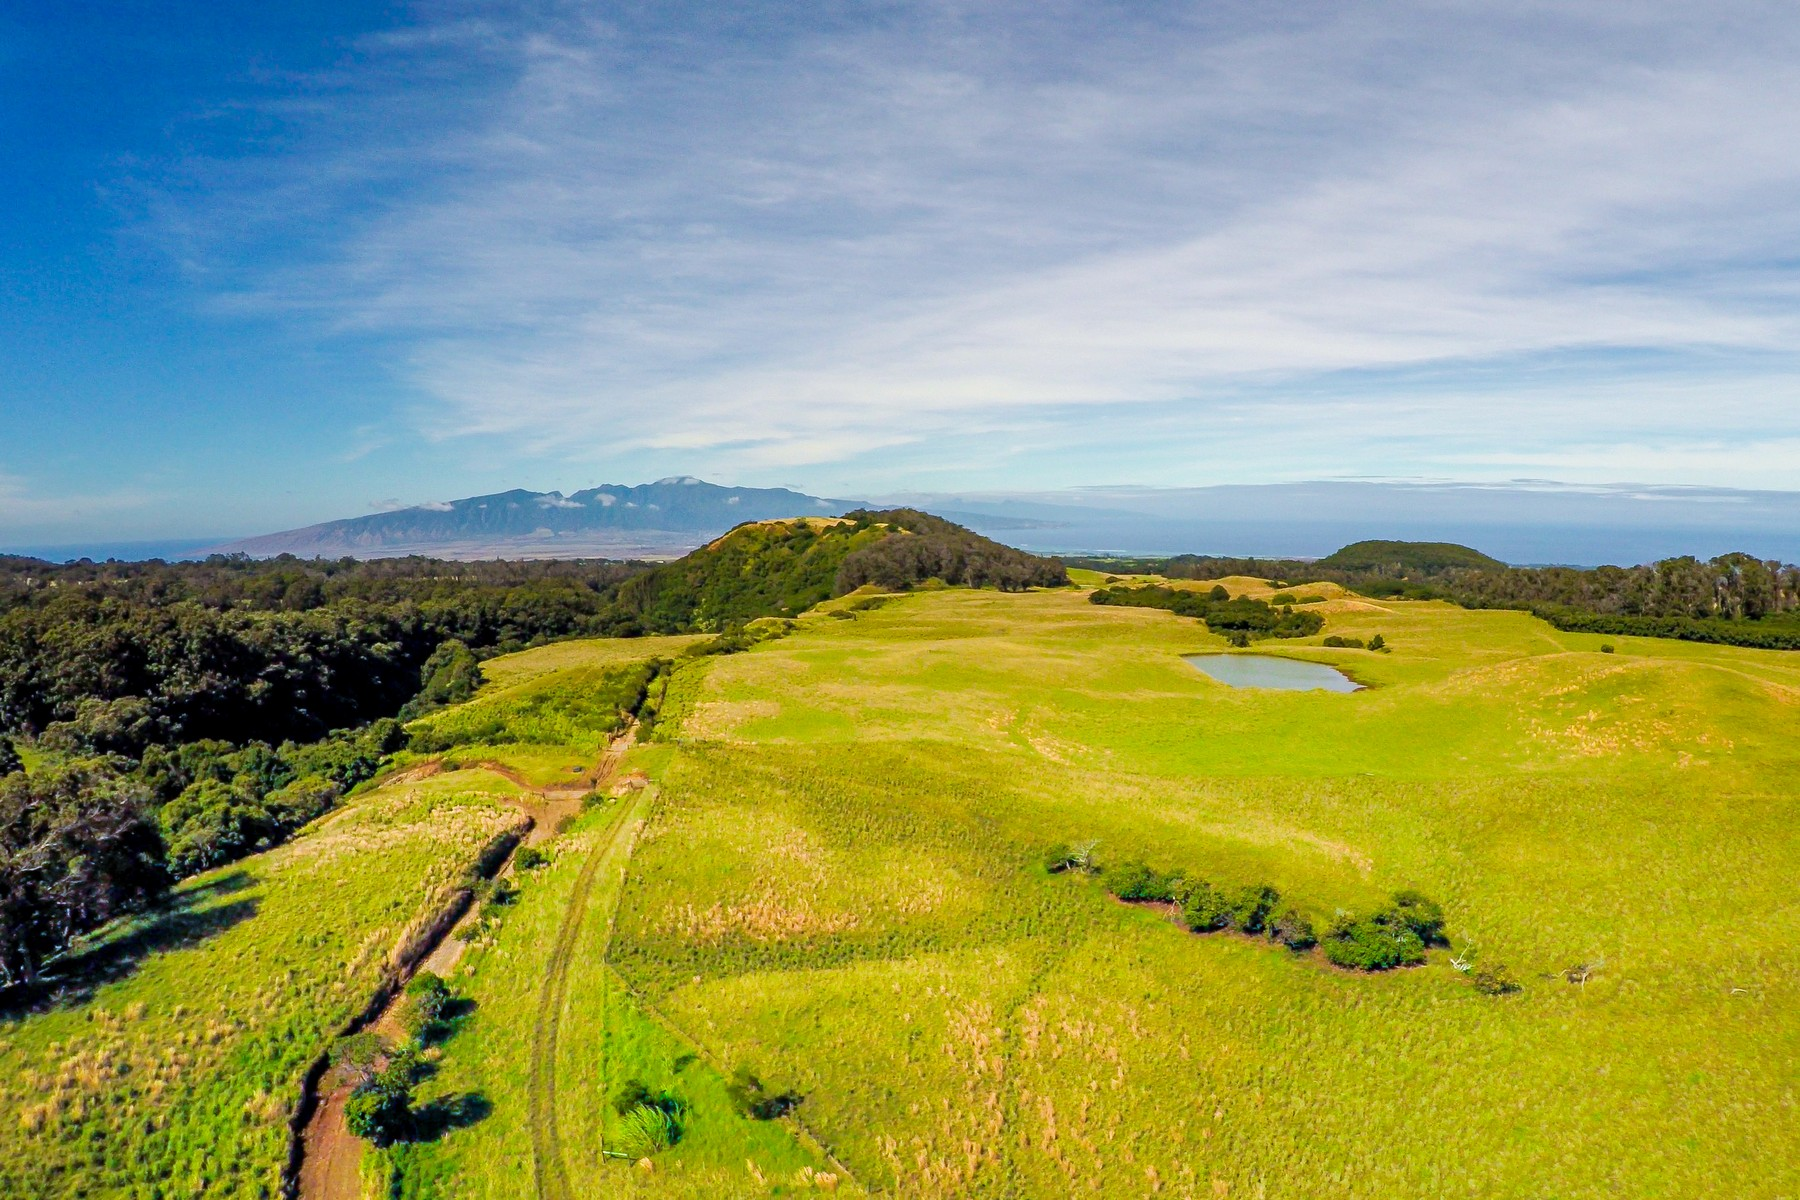 Terreno por un Venta en Piiholo Ranch 325 Waiahiwi Road, Piiholo Ranch Makawao, Hawaii, 96768 Estados Unidos